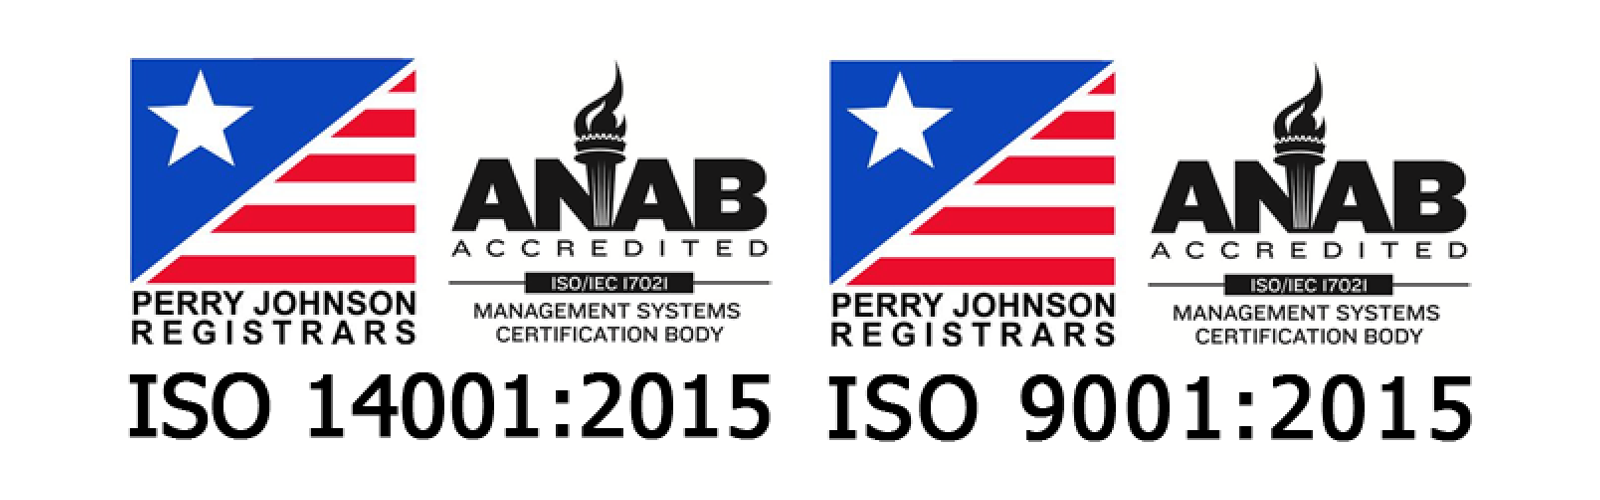 ISO 14001:2015 / ISO 9001:2015 Certified